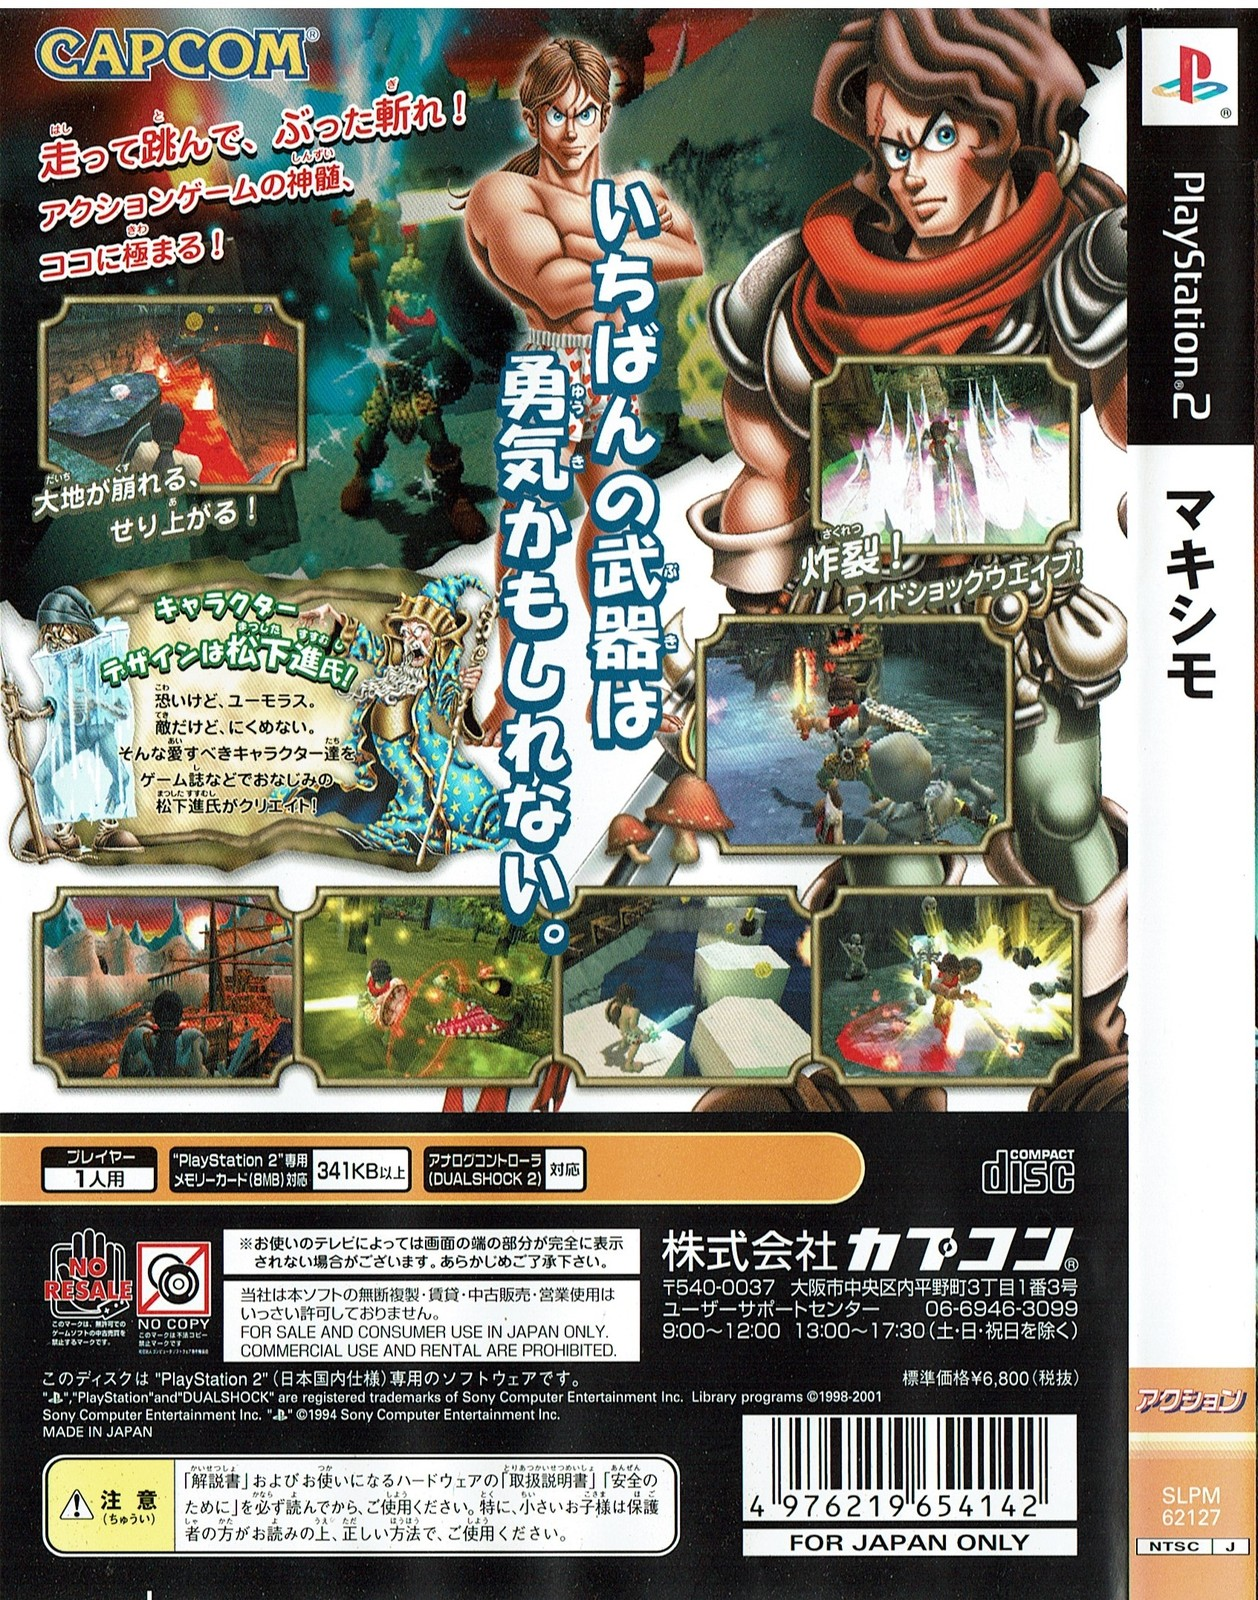 MAXIMO, PlayStation 2, PS2, (SLPM-62127) (Import for Japan Console)